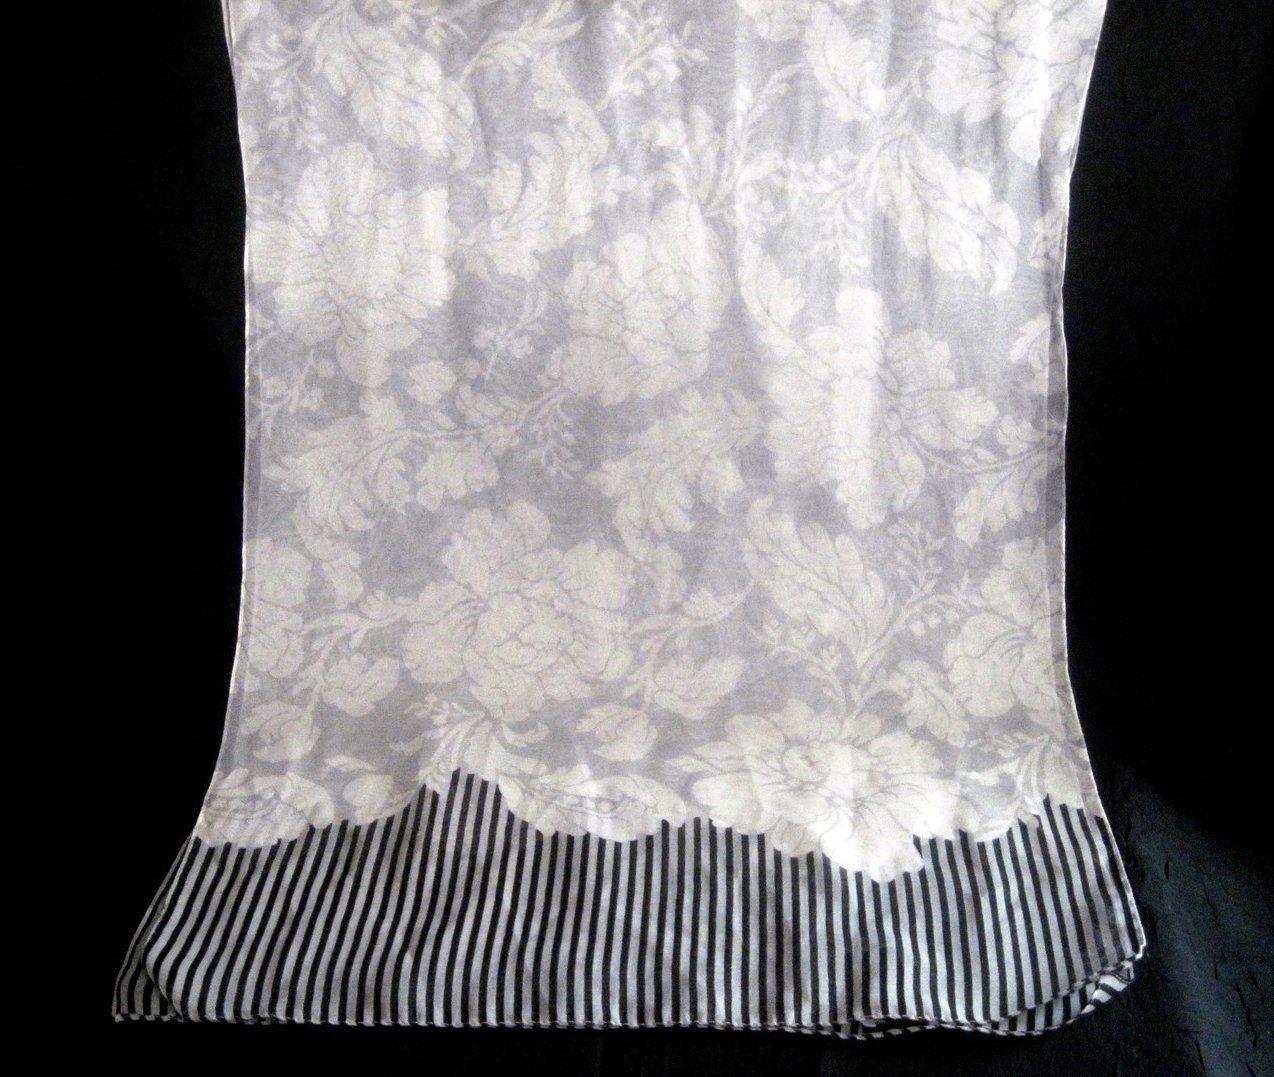 Peony Print Scarf White Gray Black 60 X 15 Semi Sheer